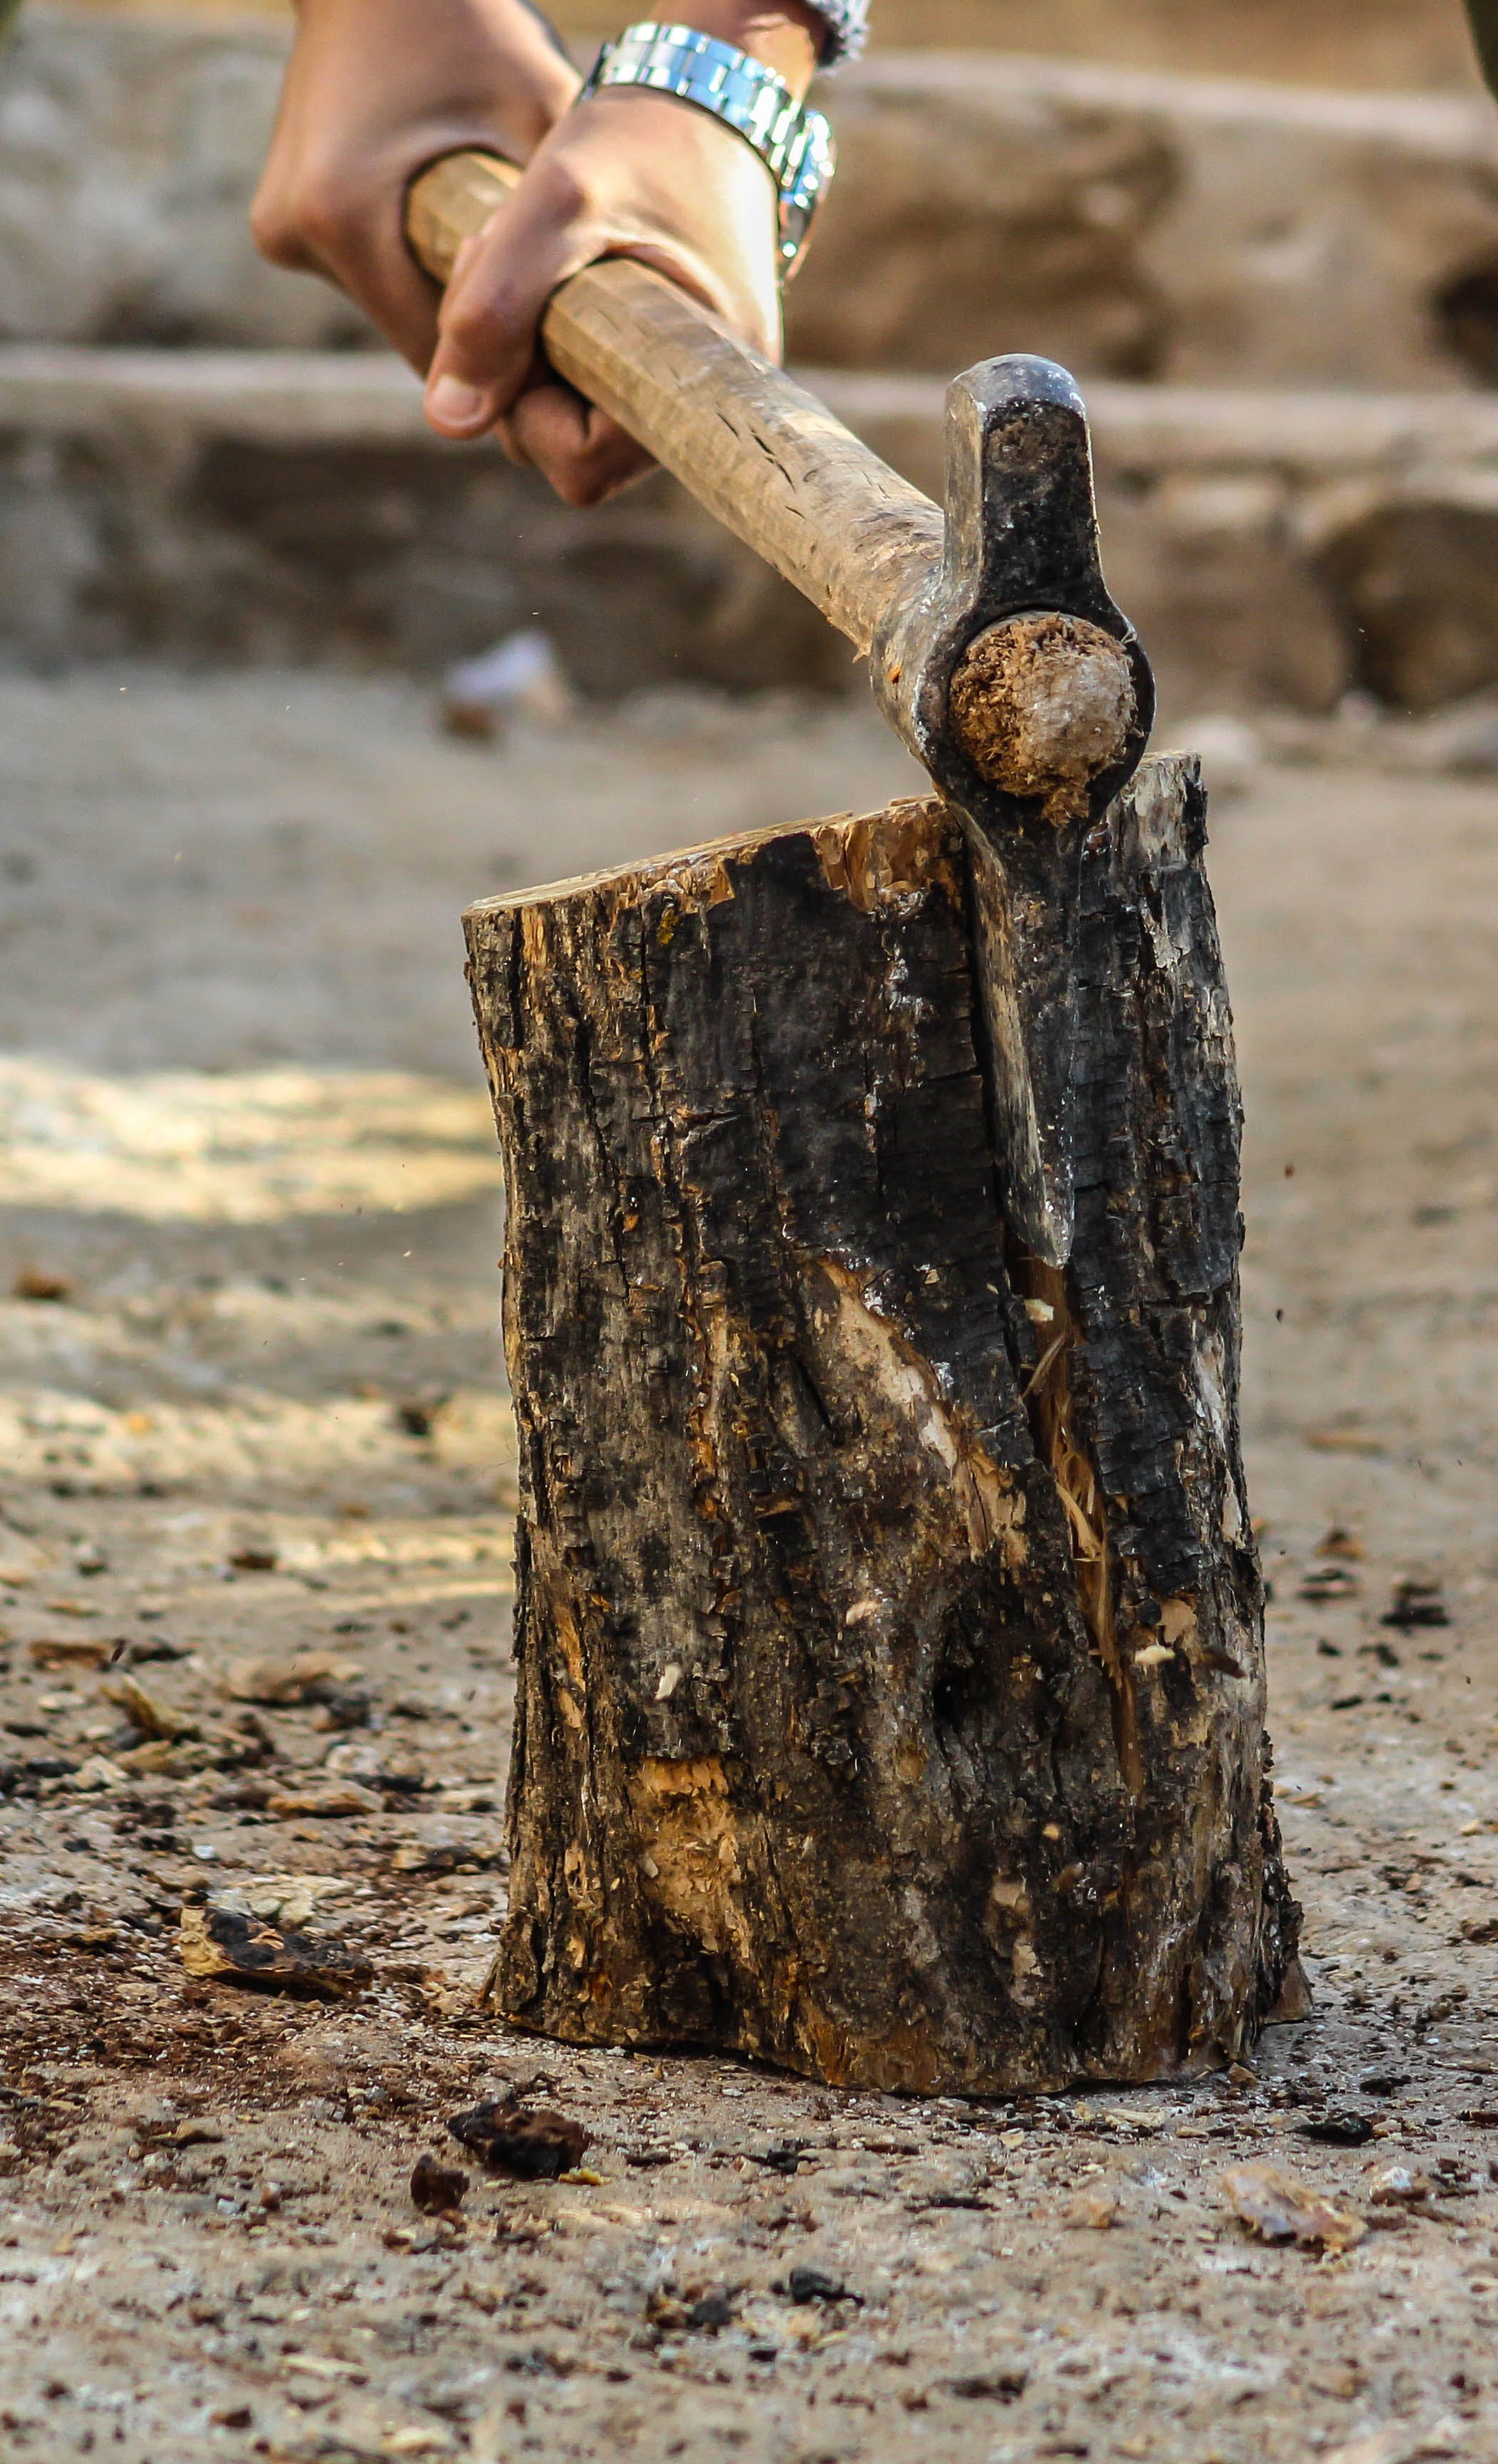 Photography of a Person Chopping Wood